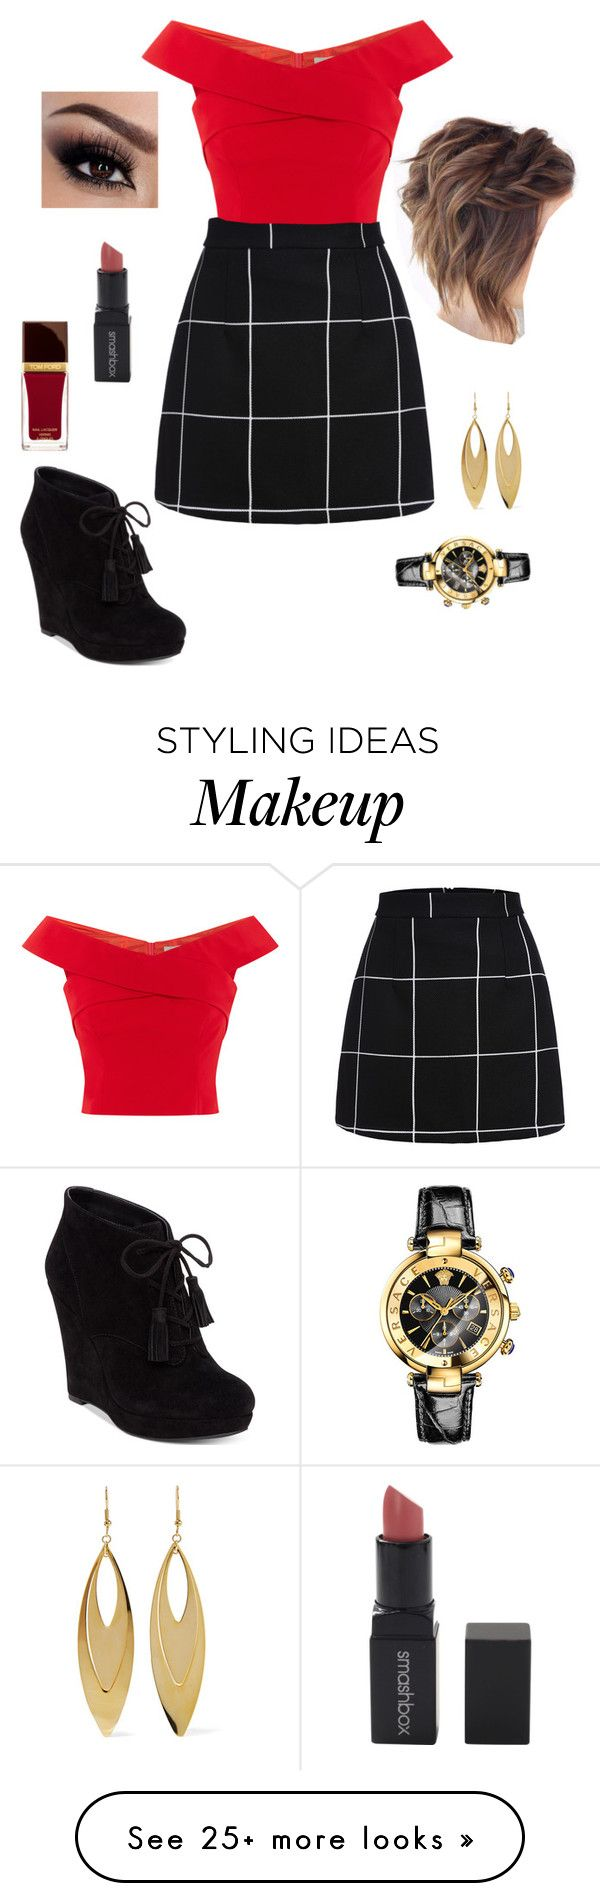 """"""""""" by goddessofbacon on Polyvore featuring Jessica Simpson, Tom Ford, Smashbox, Kenneth Jay Lane and Versace"""